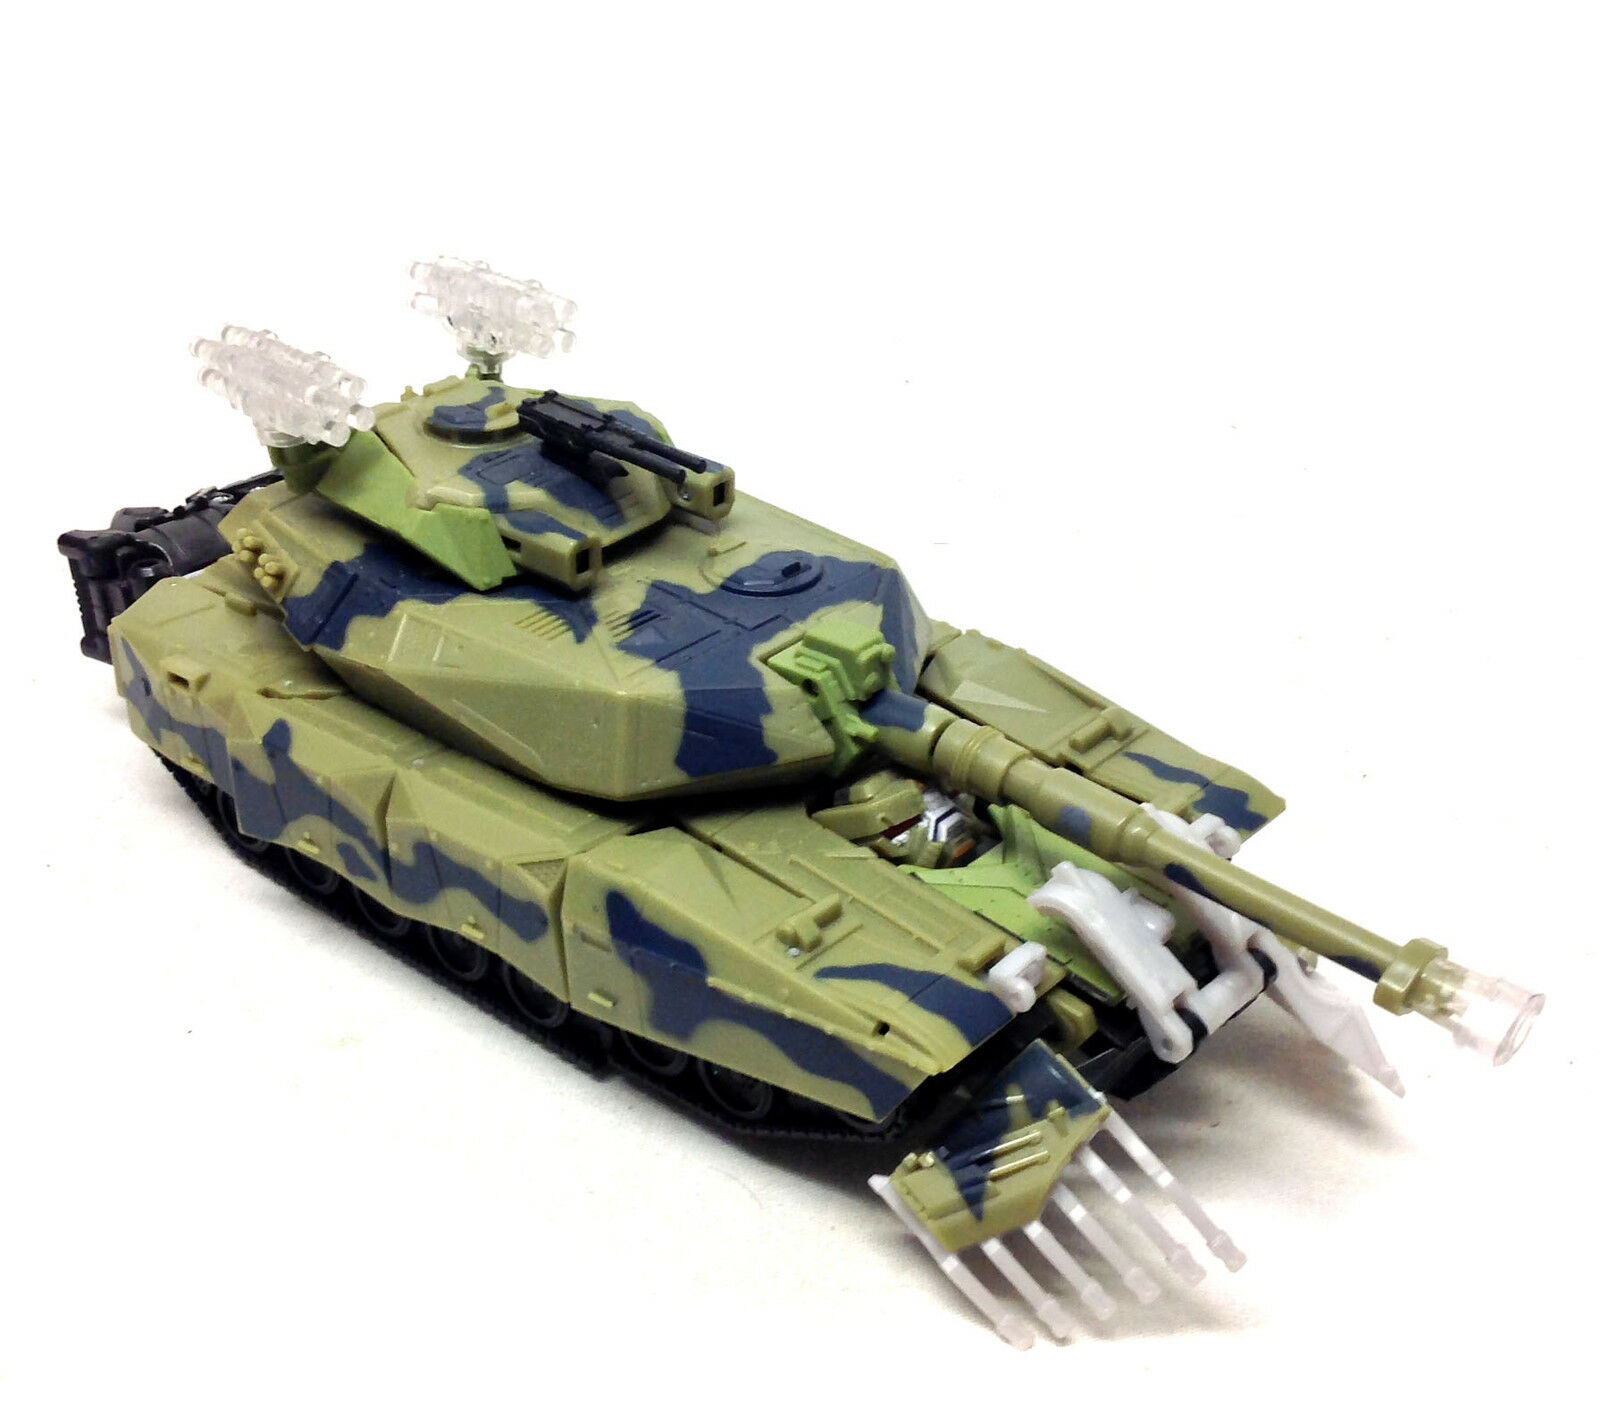 TRANSFORMERS Leader BRAWL 10  Electronic Tank figure NEAR COMPLETE COMPLETE COMPLETE VERY RARE d020c3